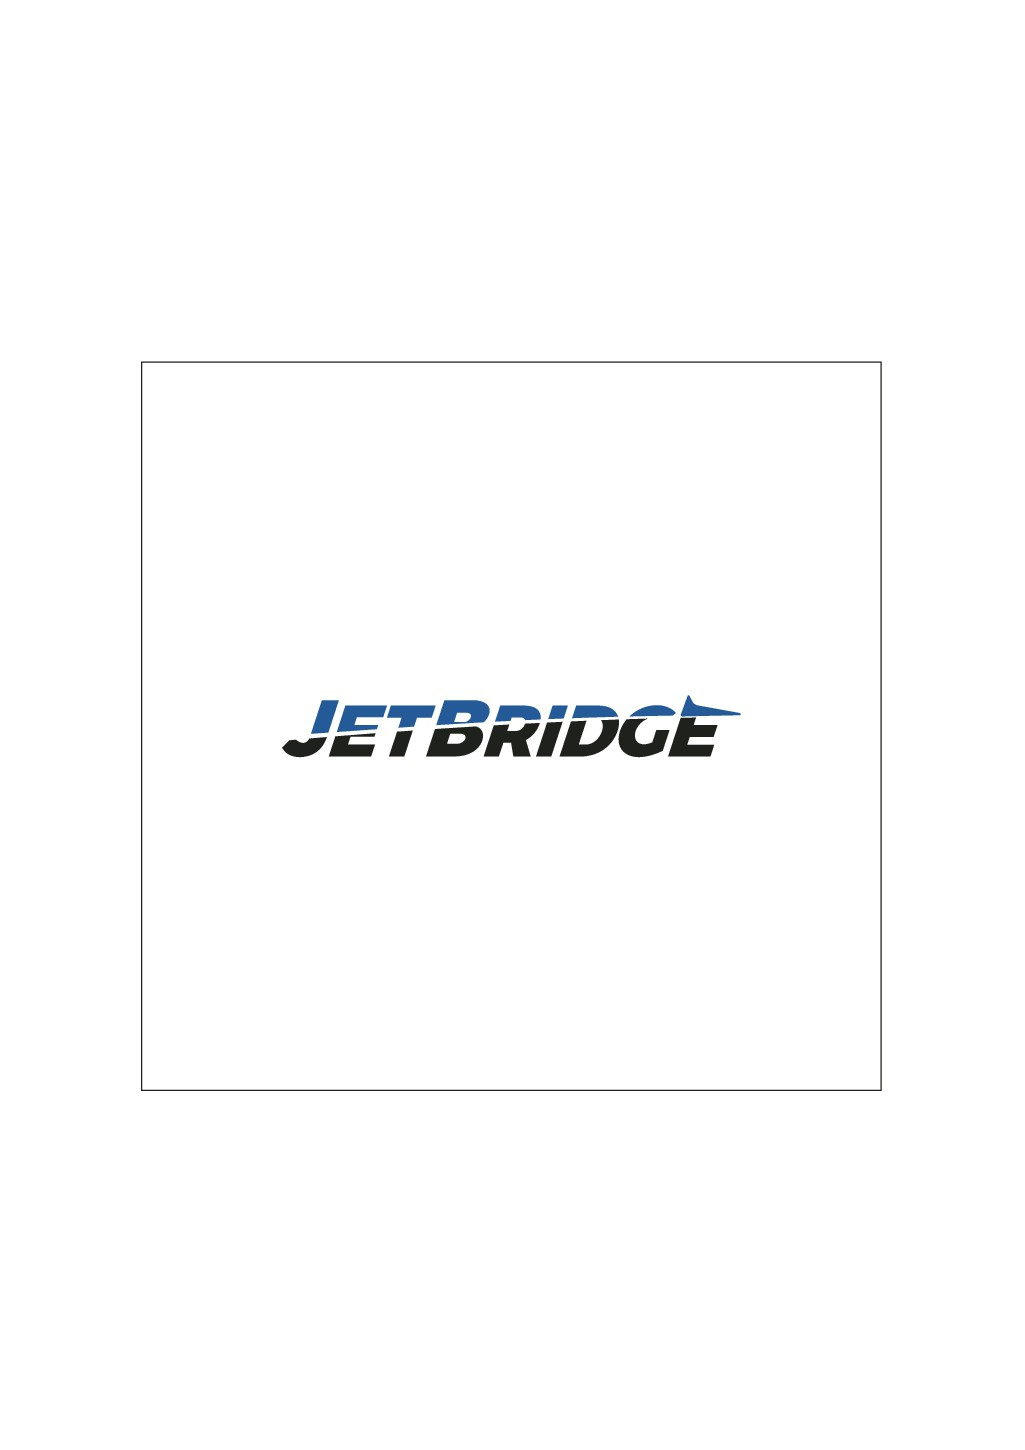 Logo for next-gen tech that integrates airplane, airline and airport data for operations and safety